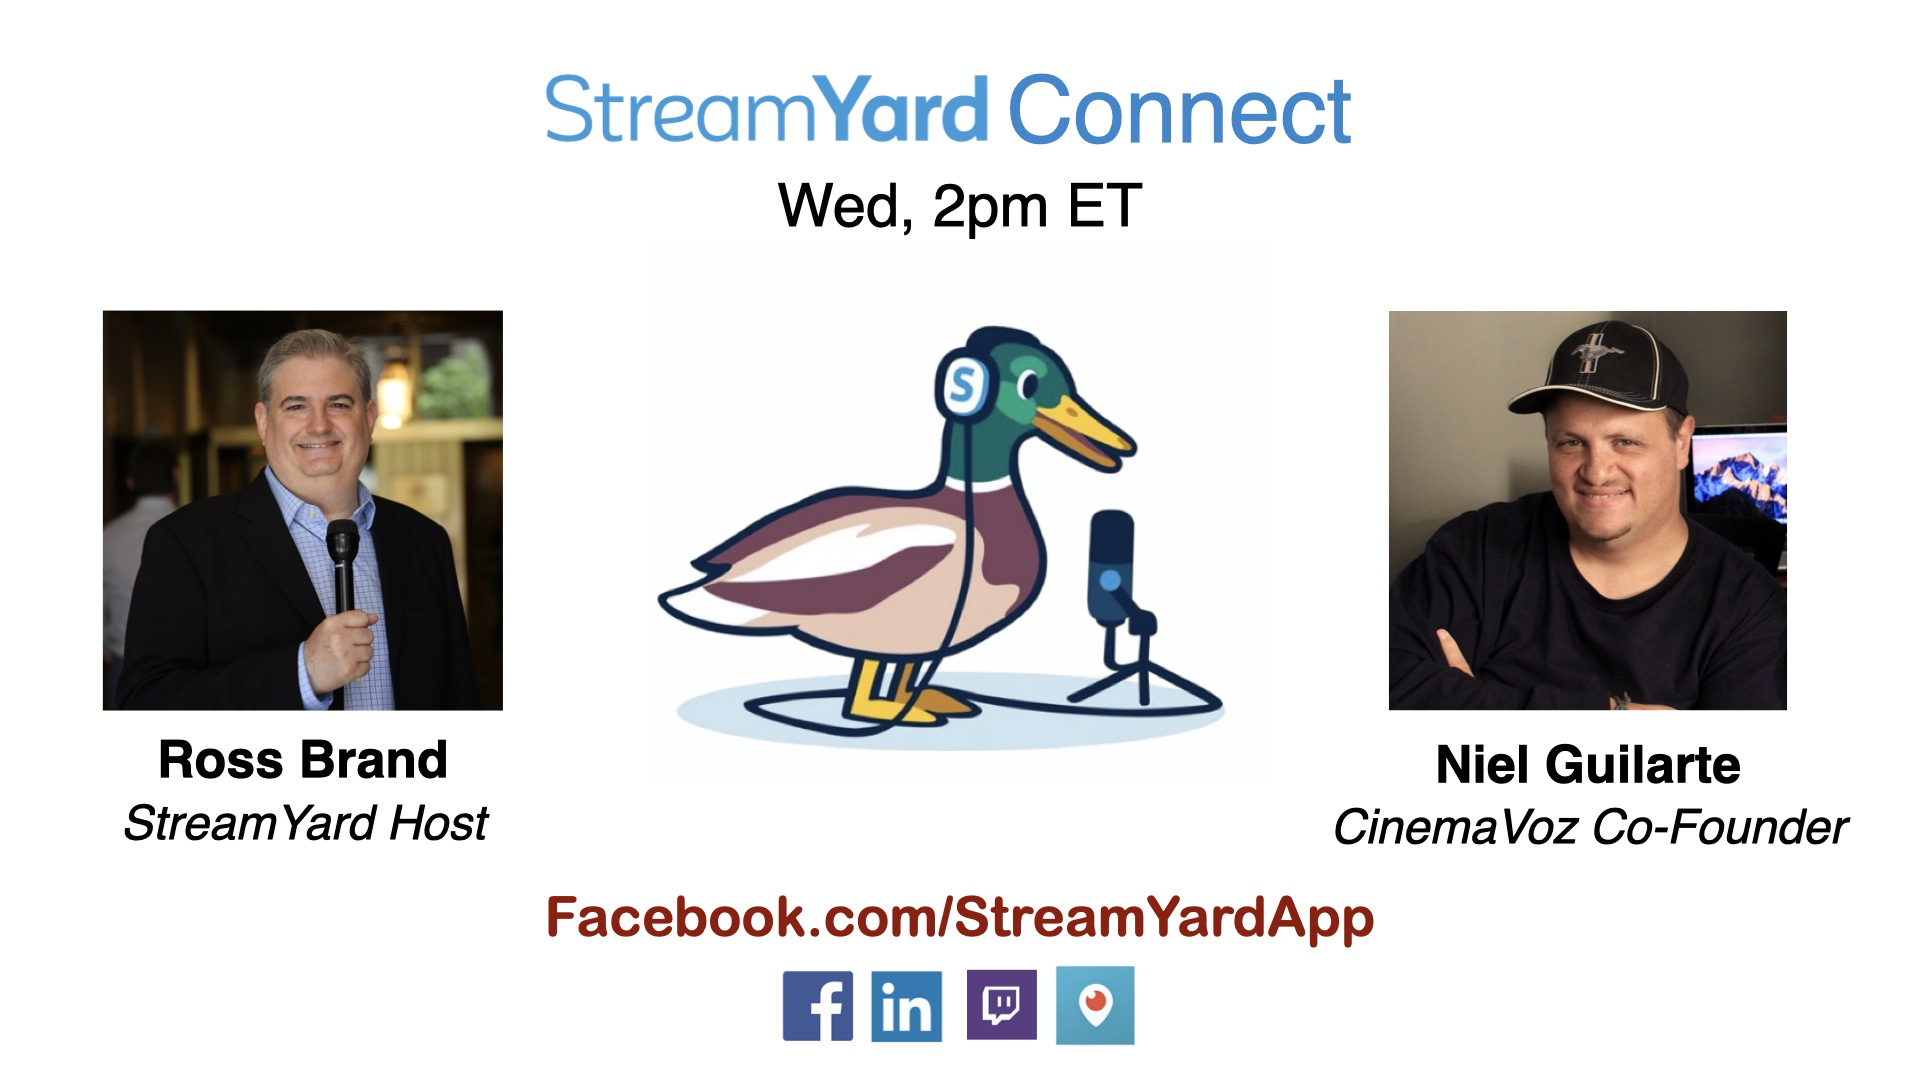 streamyard connect with ross brand ep21 niel guilarte cinema voz